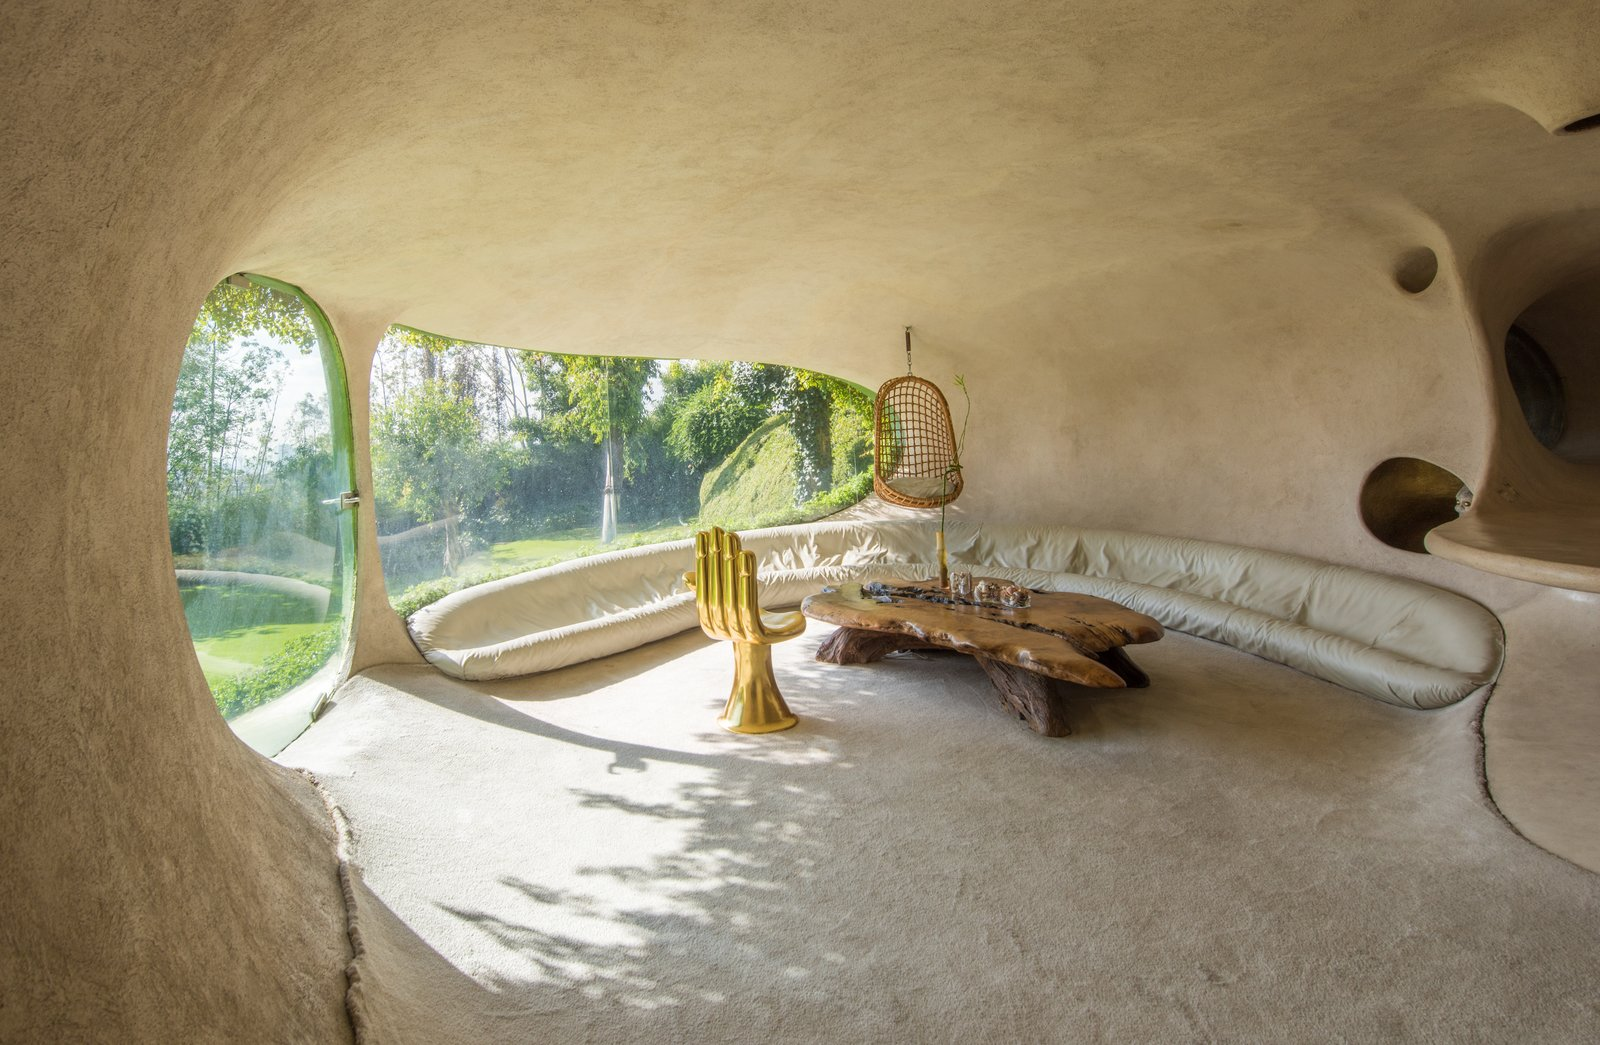 the living room features a bench filled with small polyurethane balls that conform to the shape and weight of the sitter